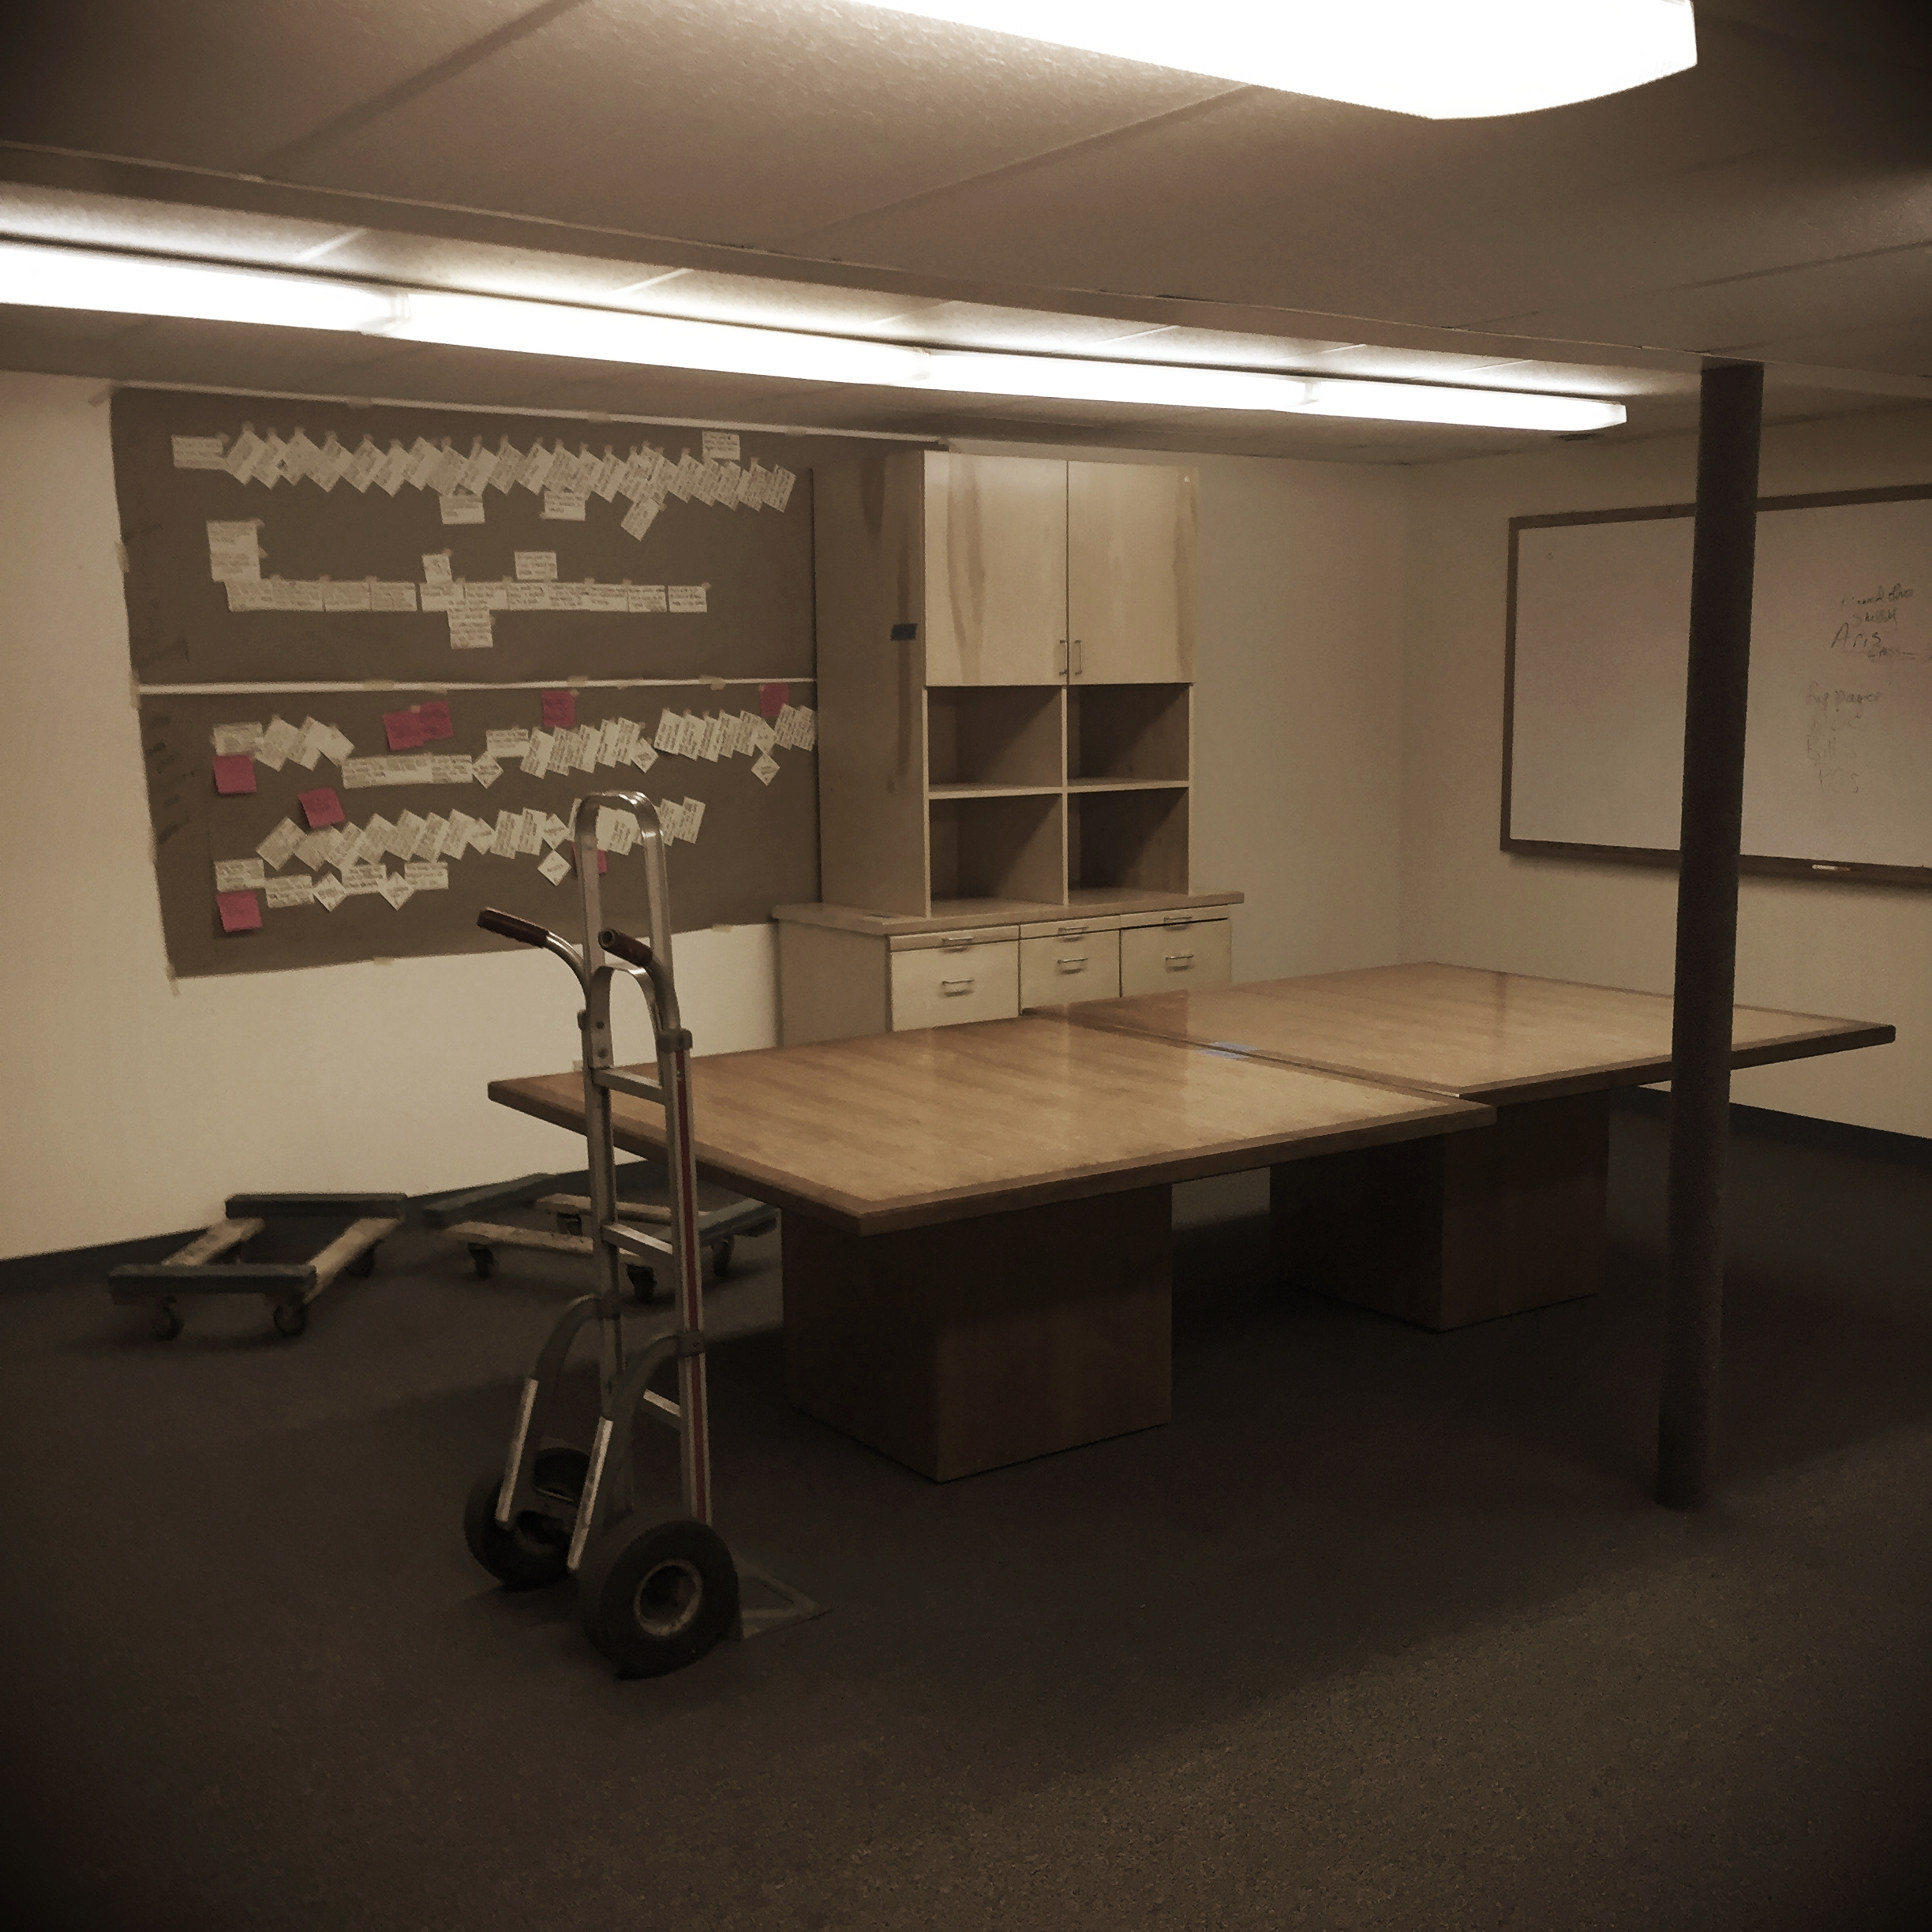 One of our old meeting rooms being emptied out